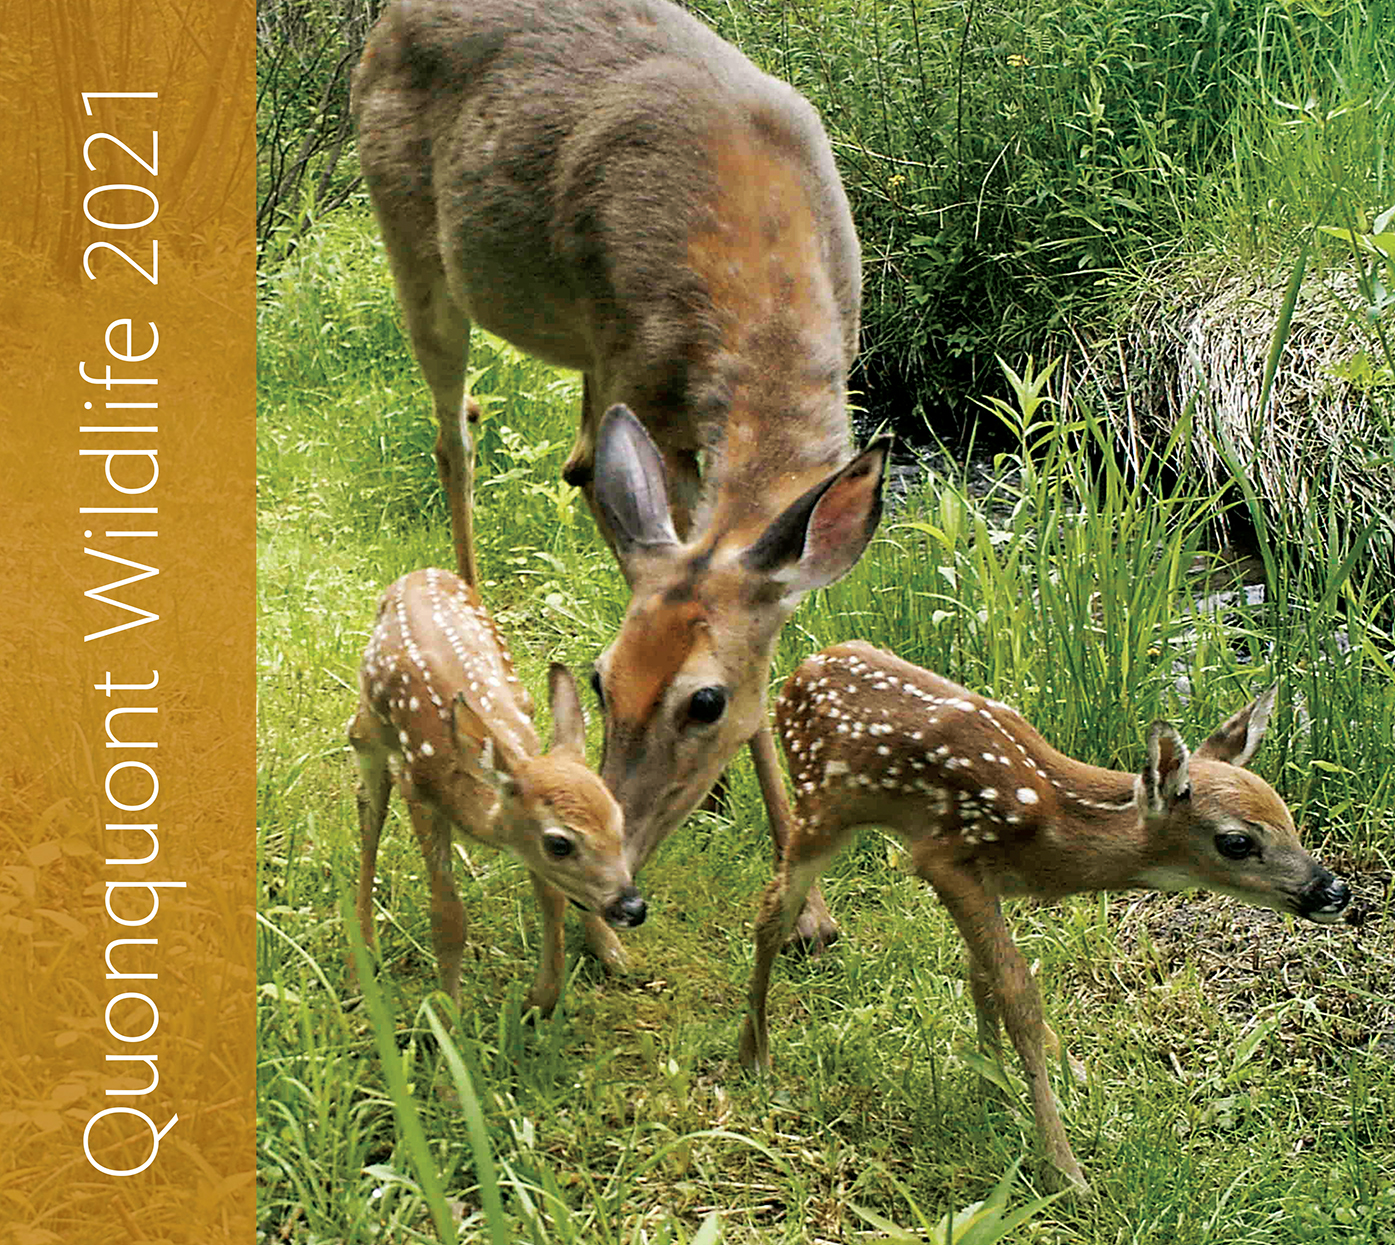 Quonquont Wildlife 2021 Wall Calendar